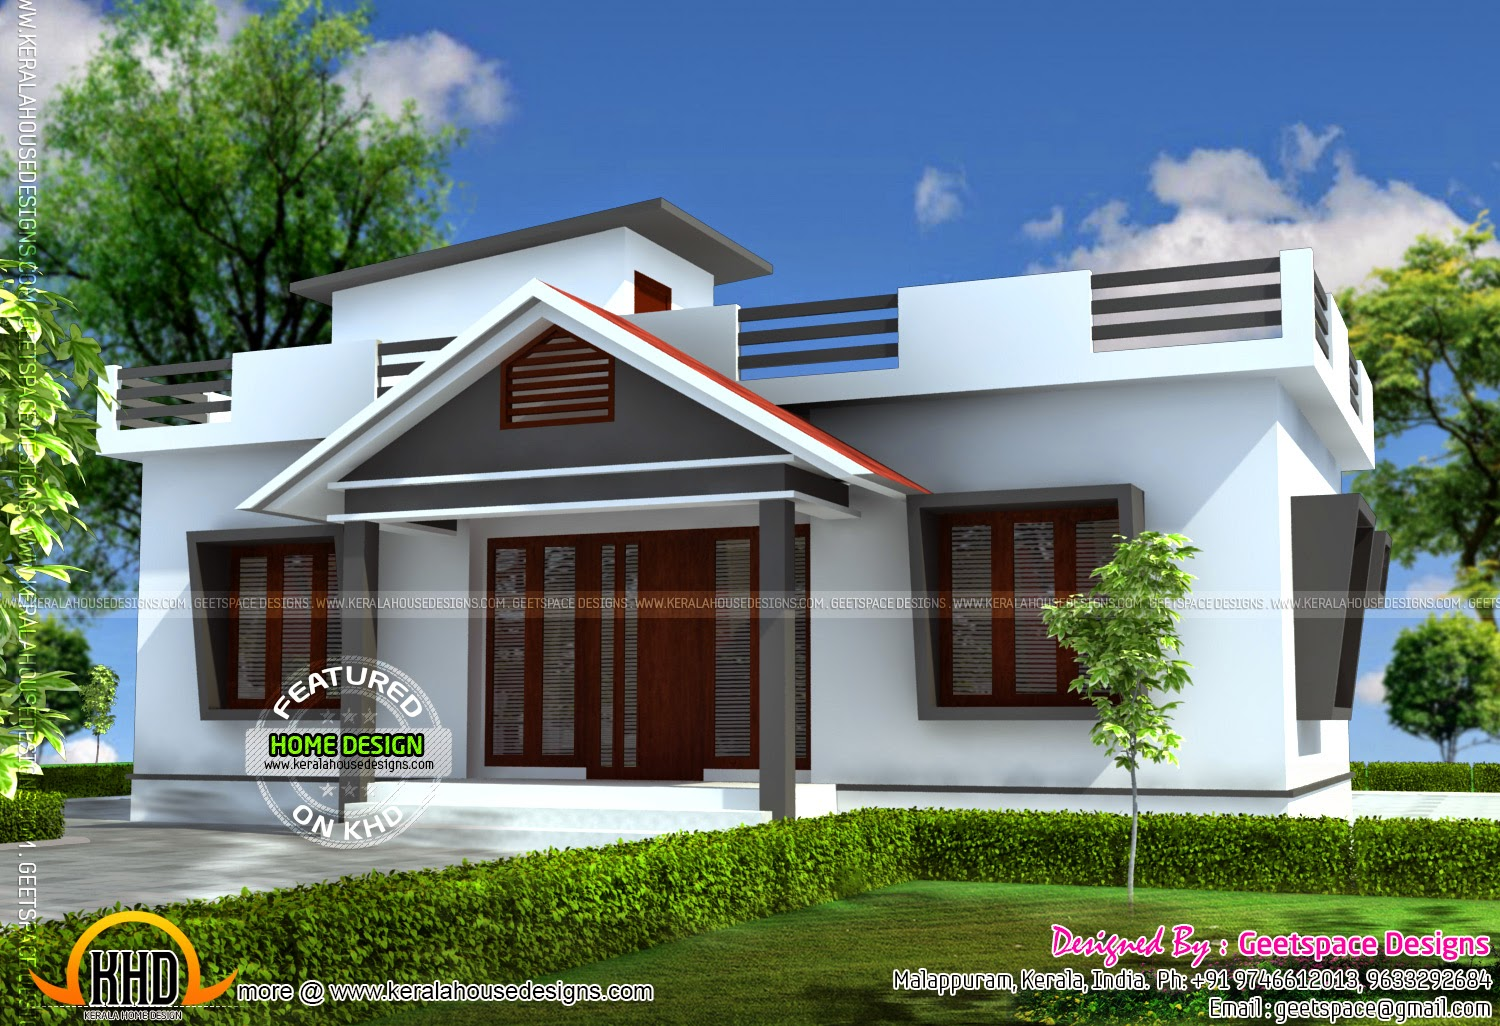 Small house in 903 square feet kerala home design and floor plans Home design